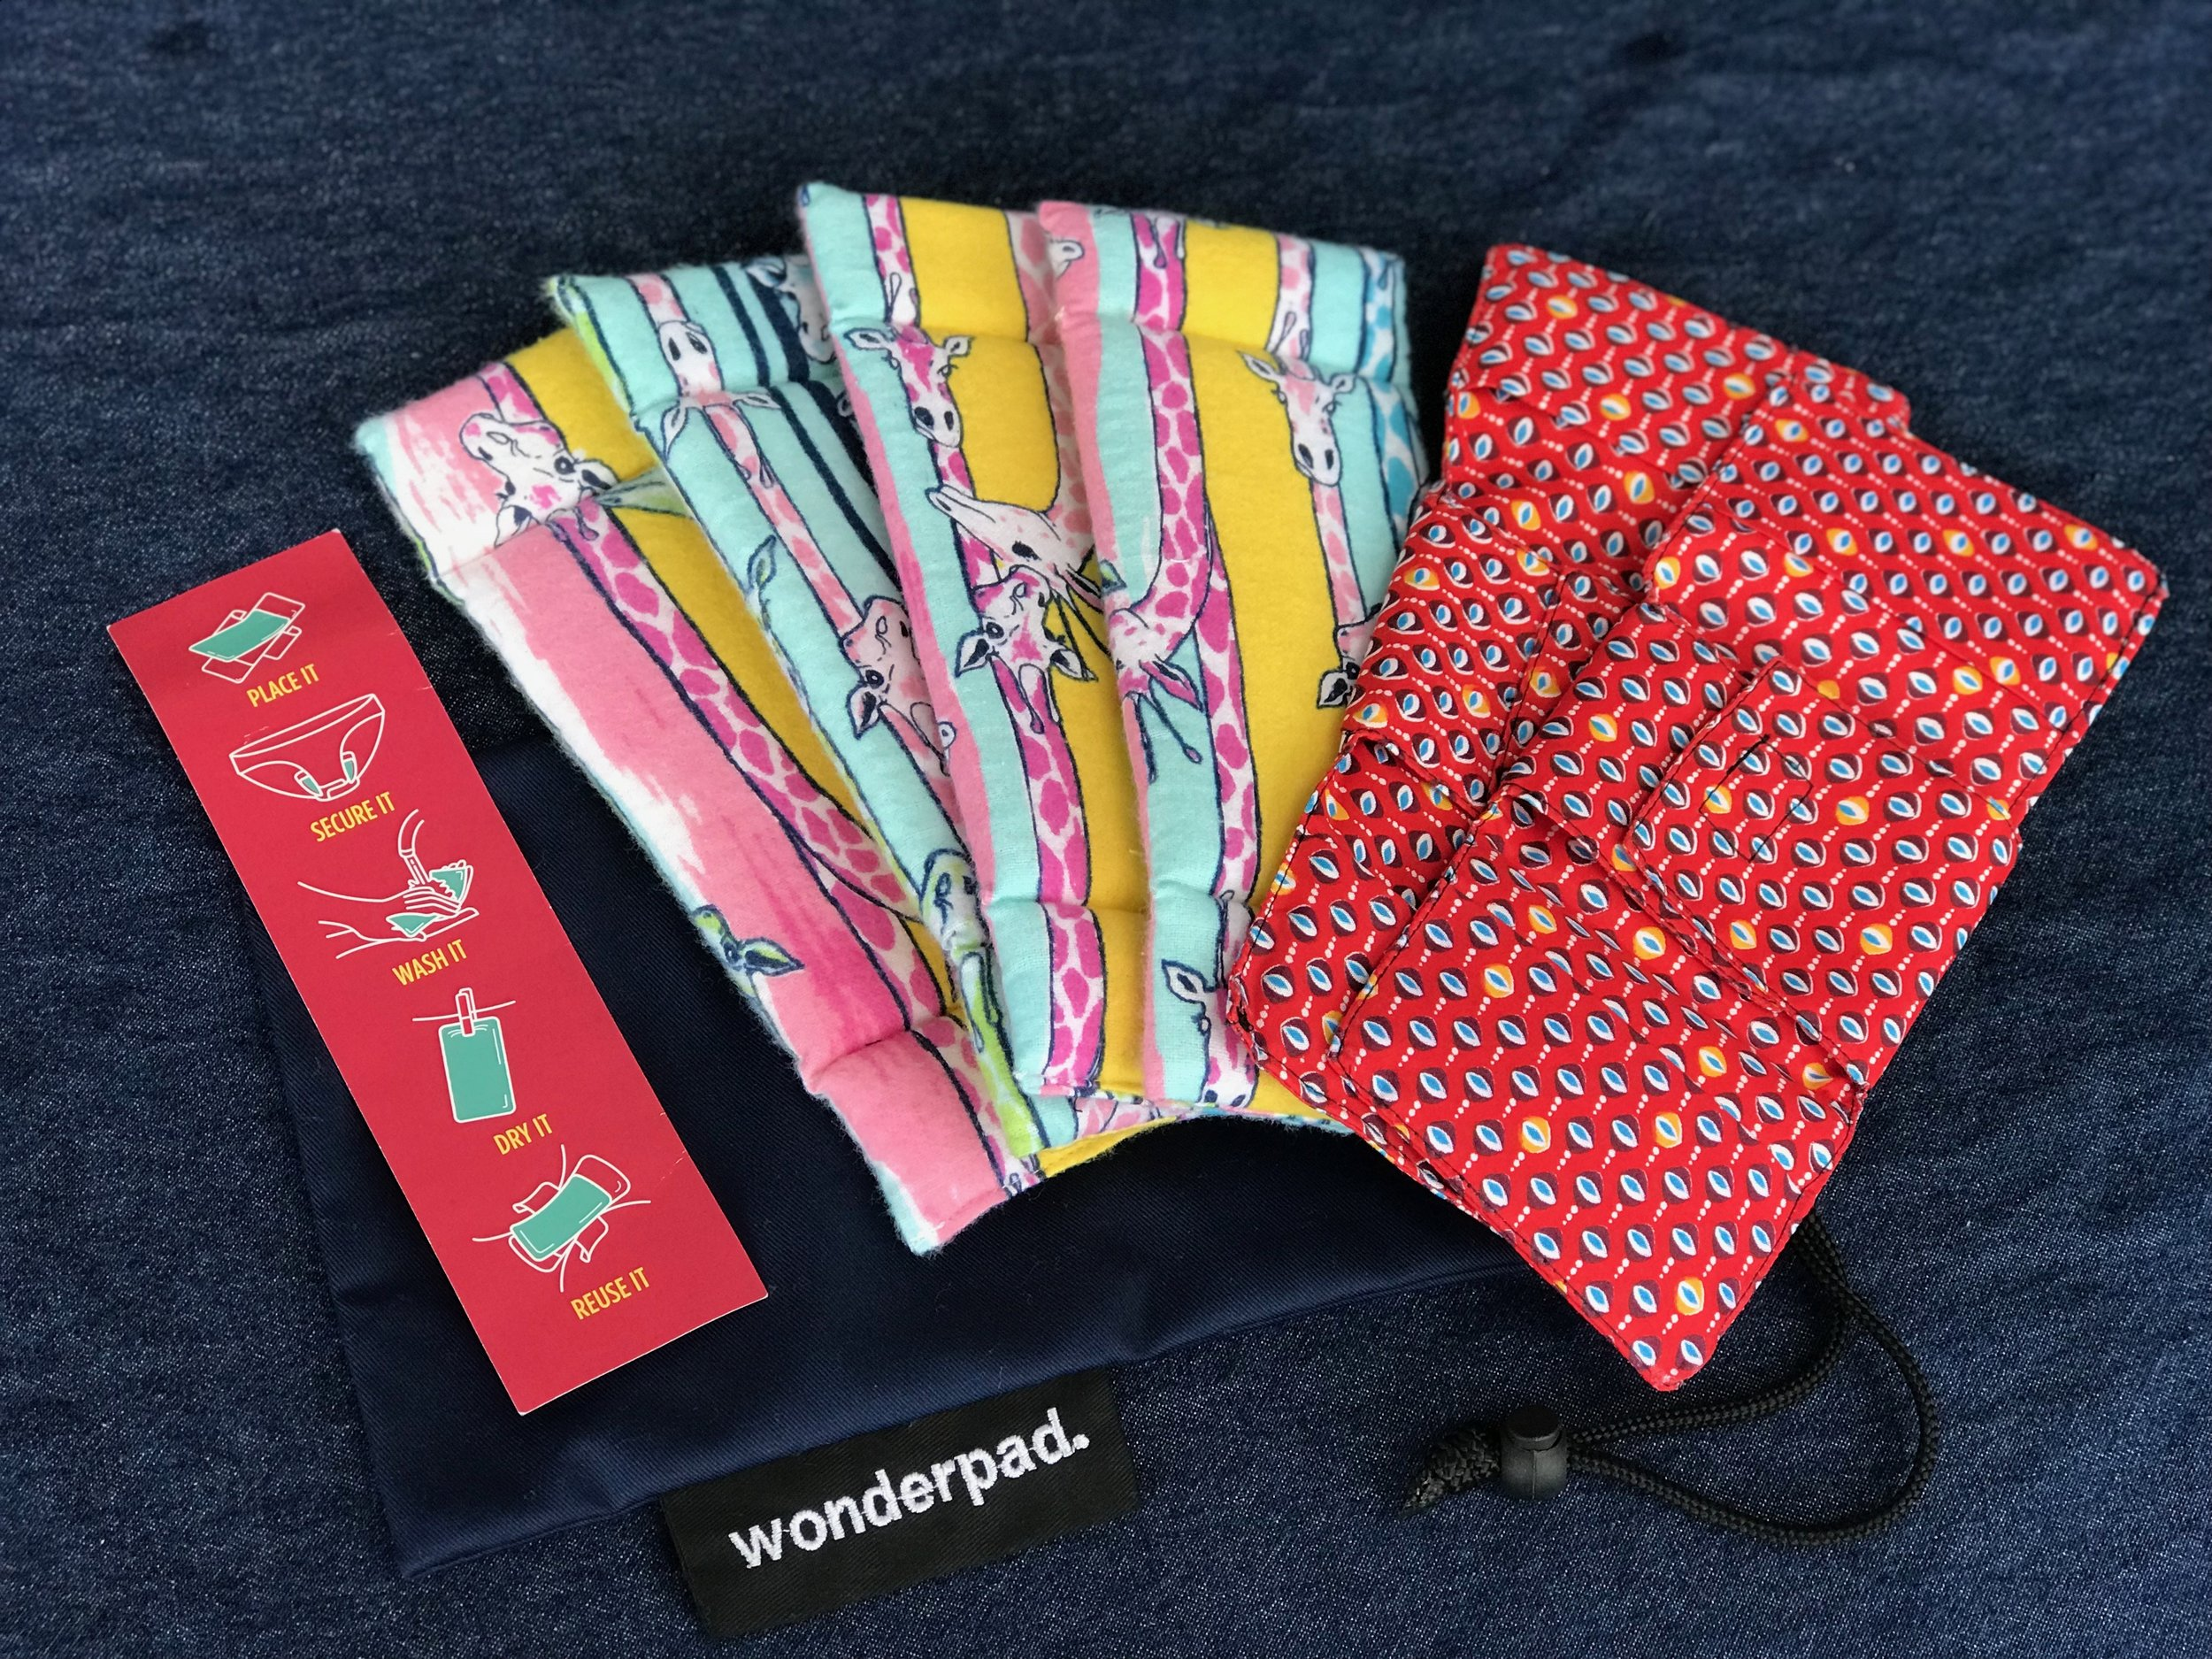 Wonderpads are washable sanitary pads. - Wonderpads are made of thin, absorbent foam surrounded by 100% cotton flannel. A waterproof liner attaches to underwear and holds the pads in place. Everything is washable and reusable.